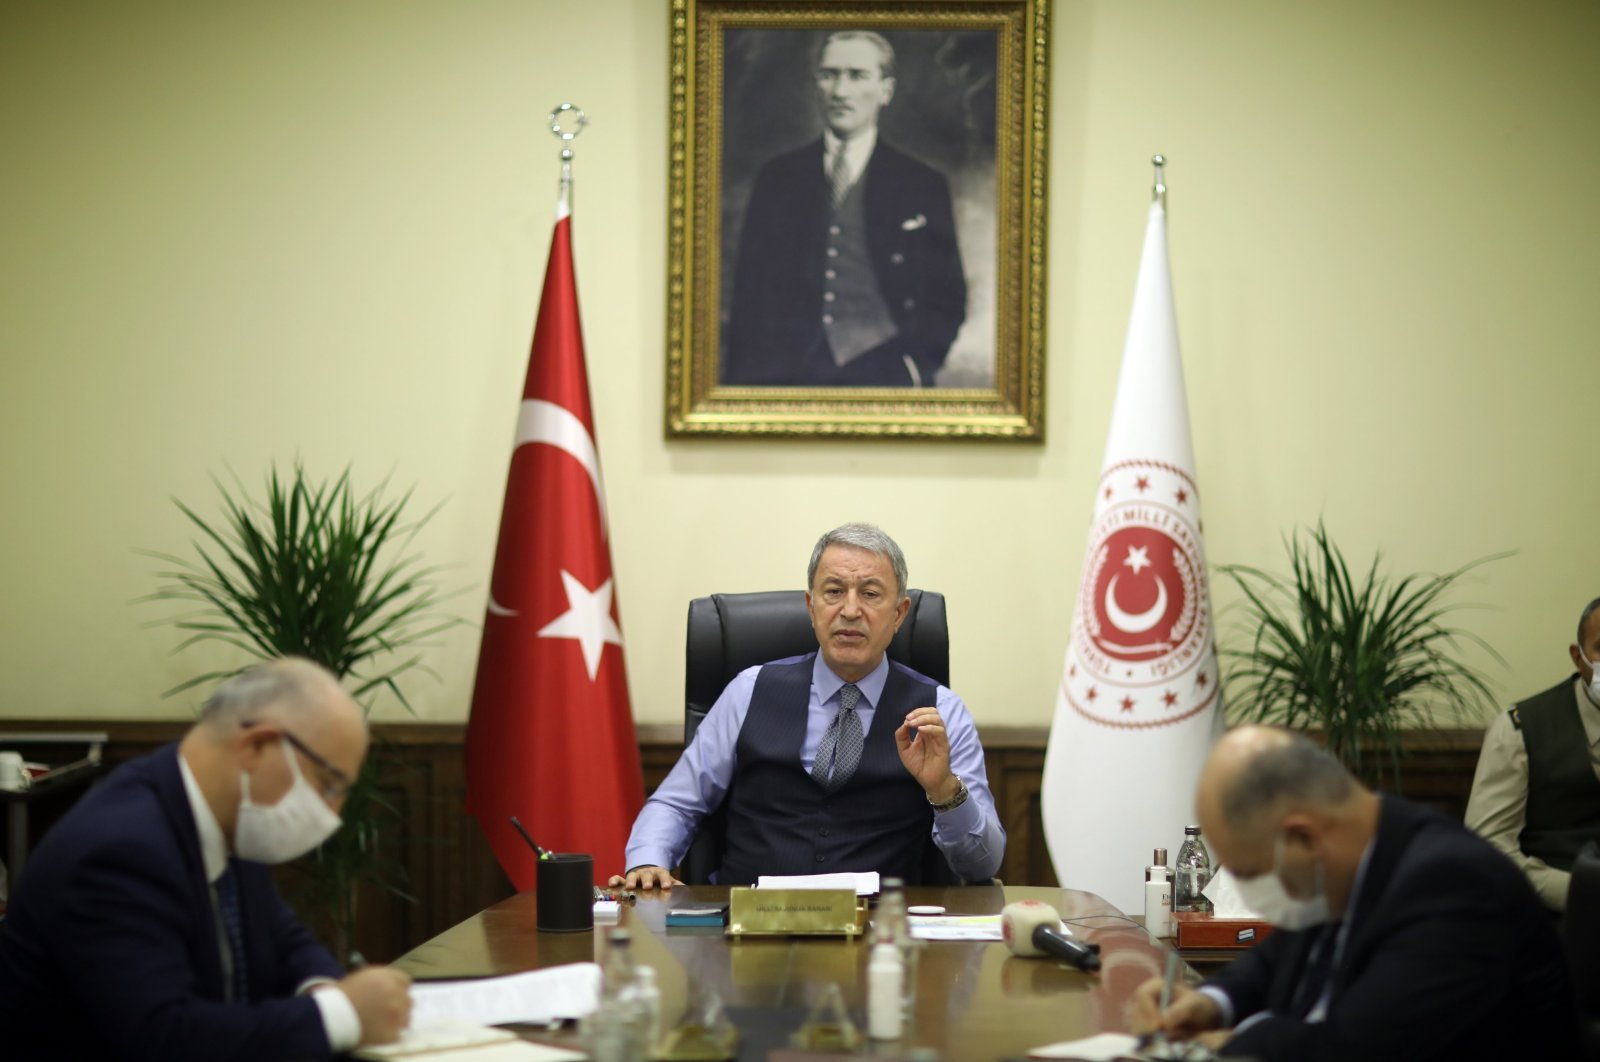 Defense Minister Hulusi Akar speaks during a videoconference with commanding officers, stating that Turkish and Russian delegations met to discuss the Nagorno-Karabakh ceasefire, Nov. 17, 2020 (IHA Photo)